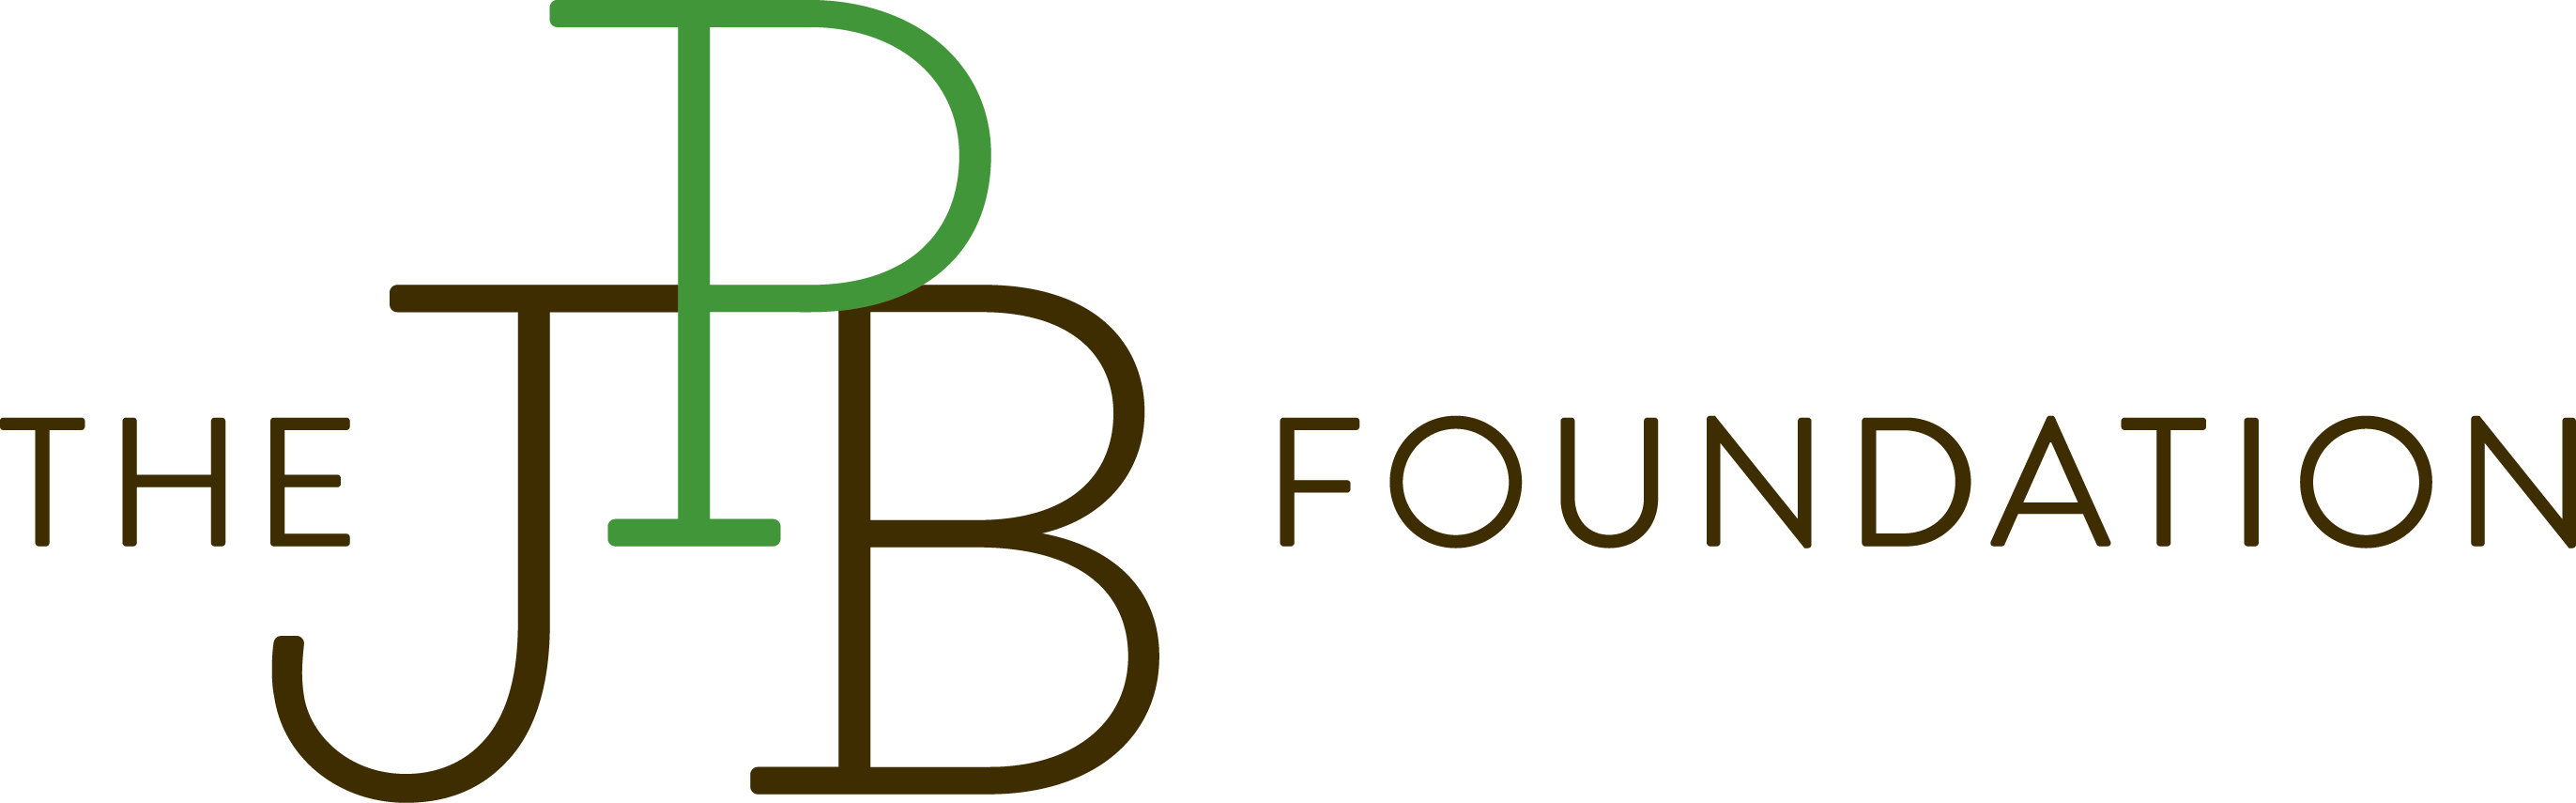 JPB foundation logo